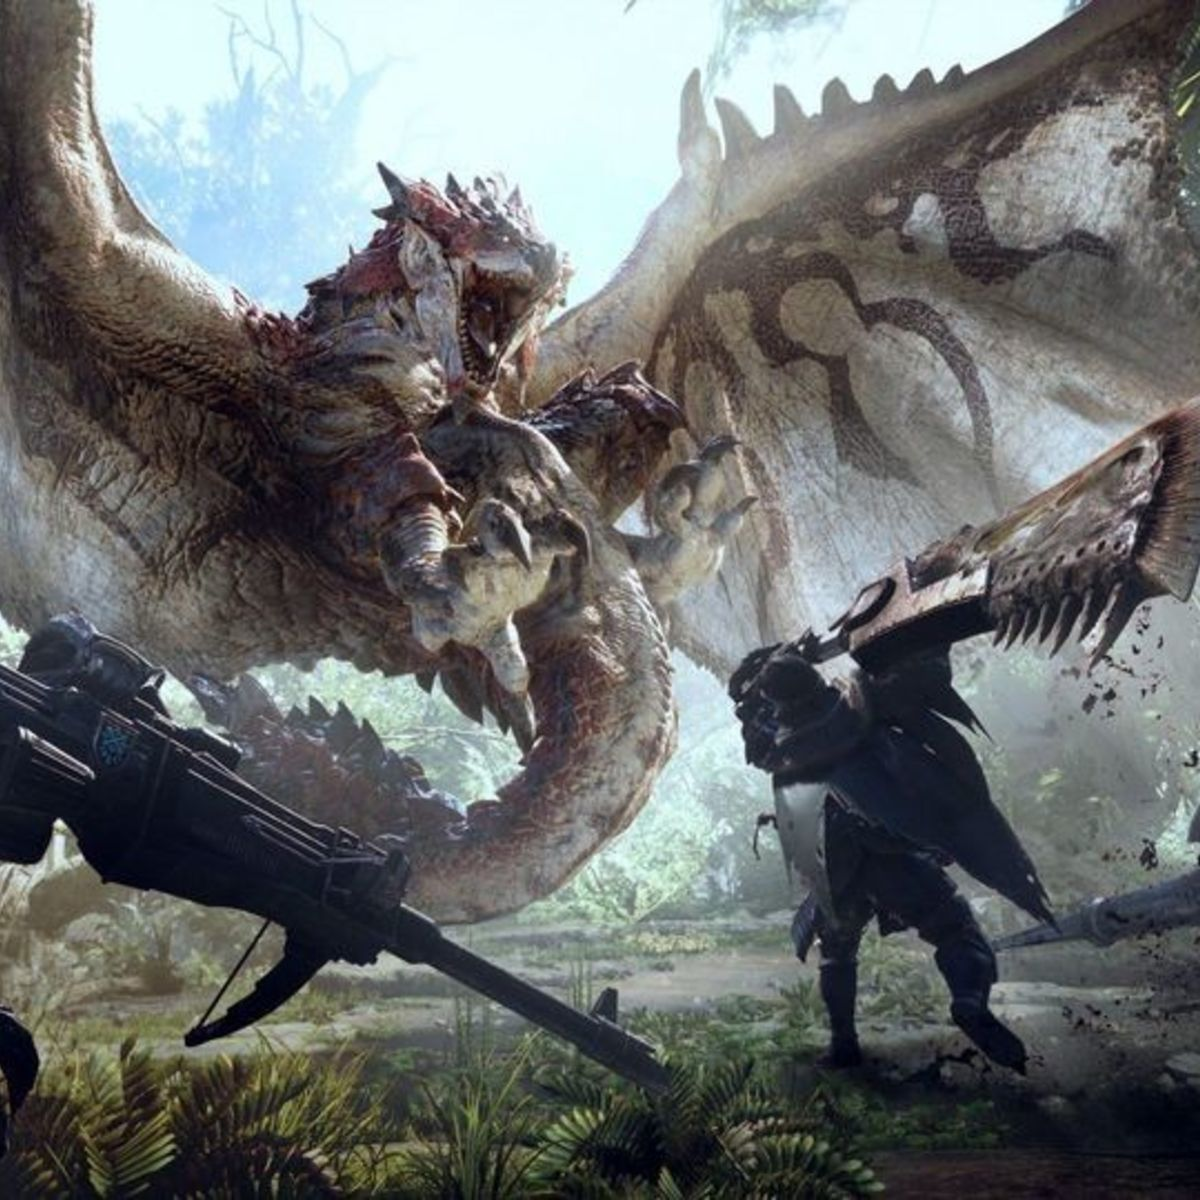 Monster Hunter Games Get 3D Animated Special in 2019